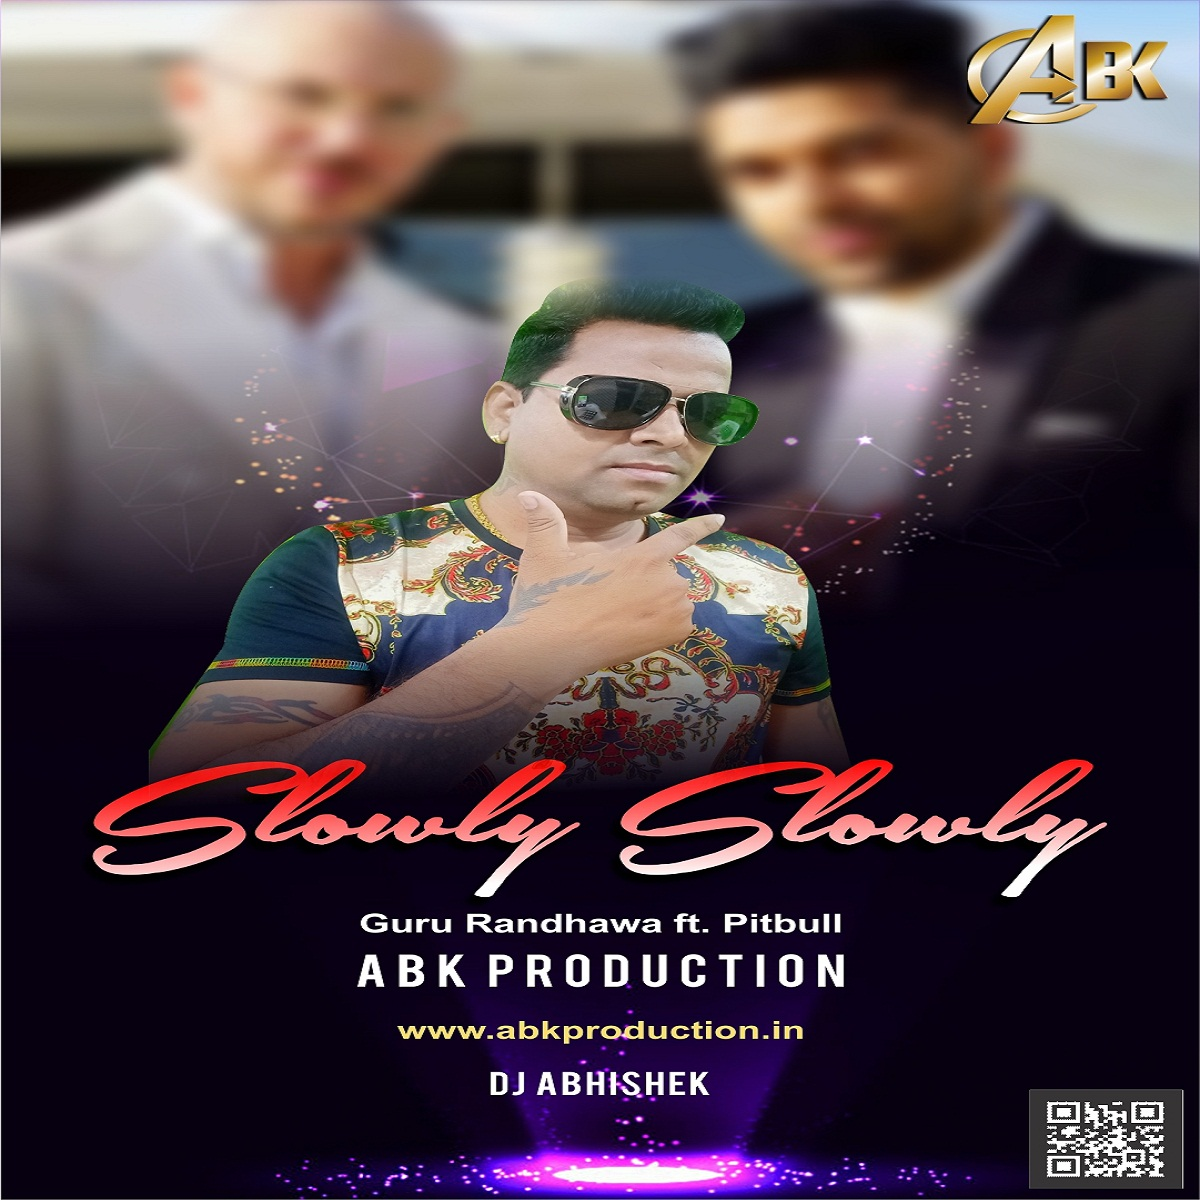 Slowly Slowly (Remix) Guru Randhawa - Abk Production